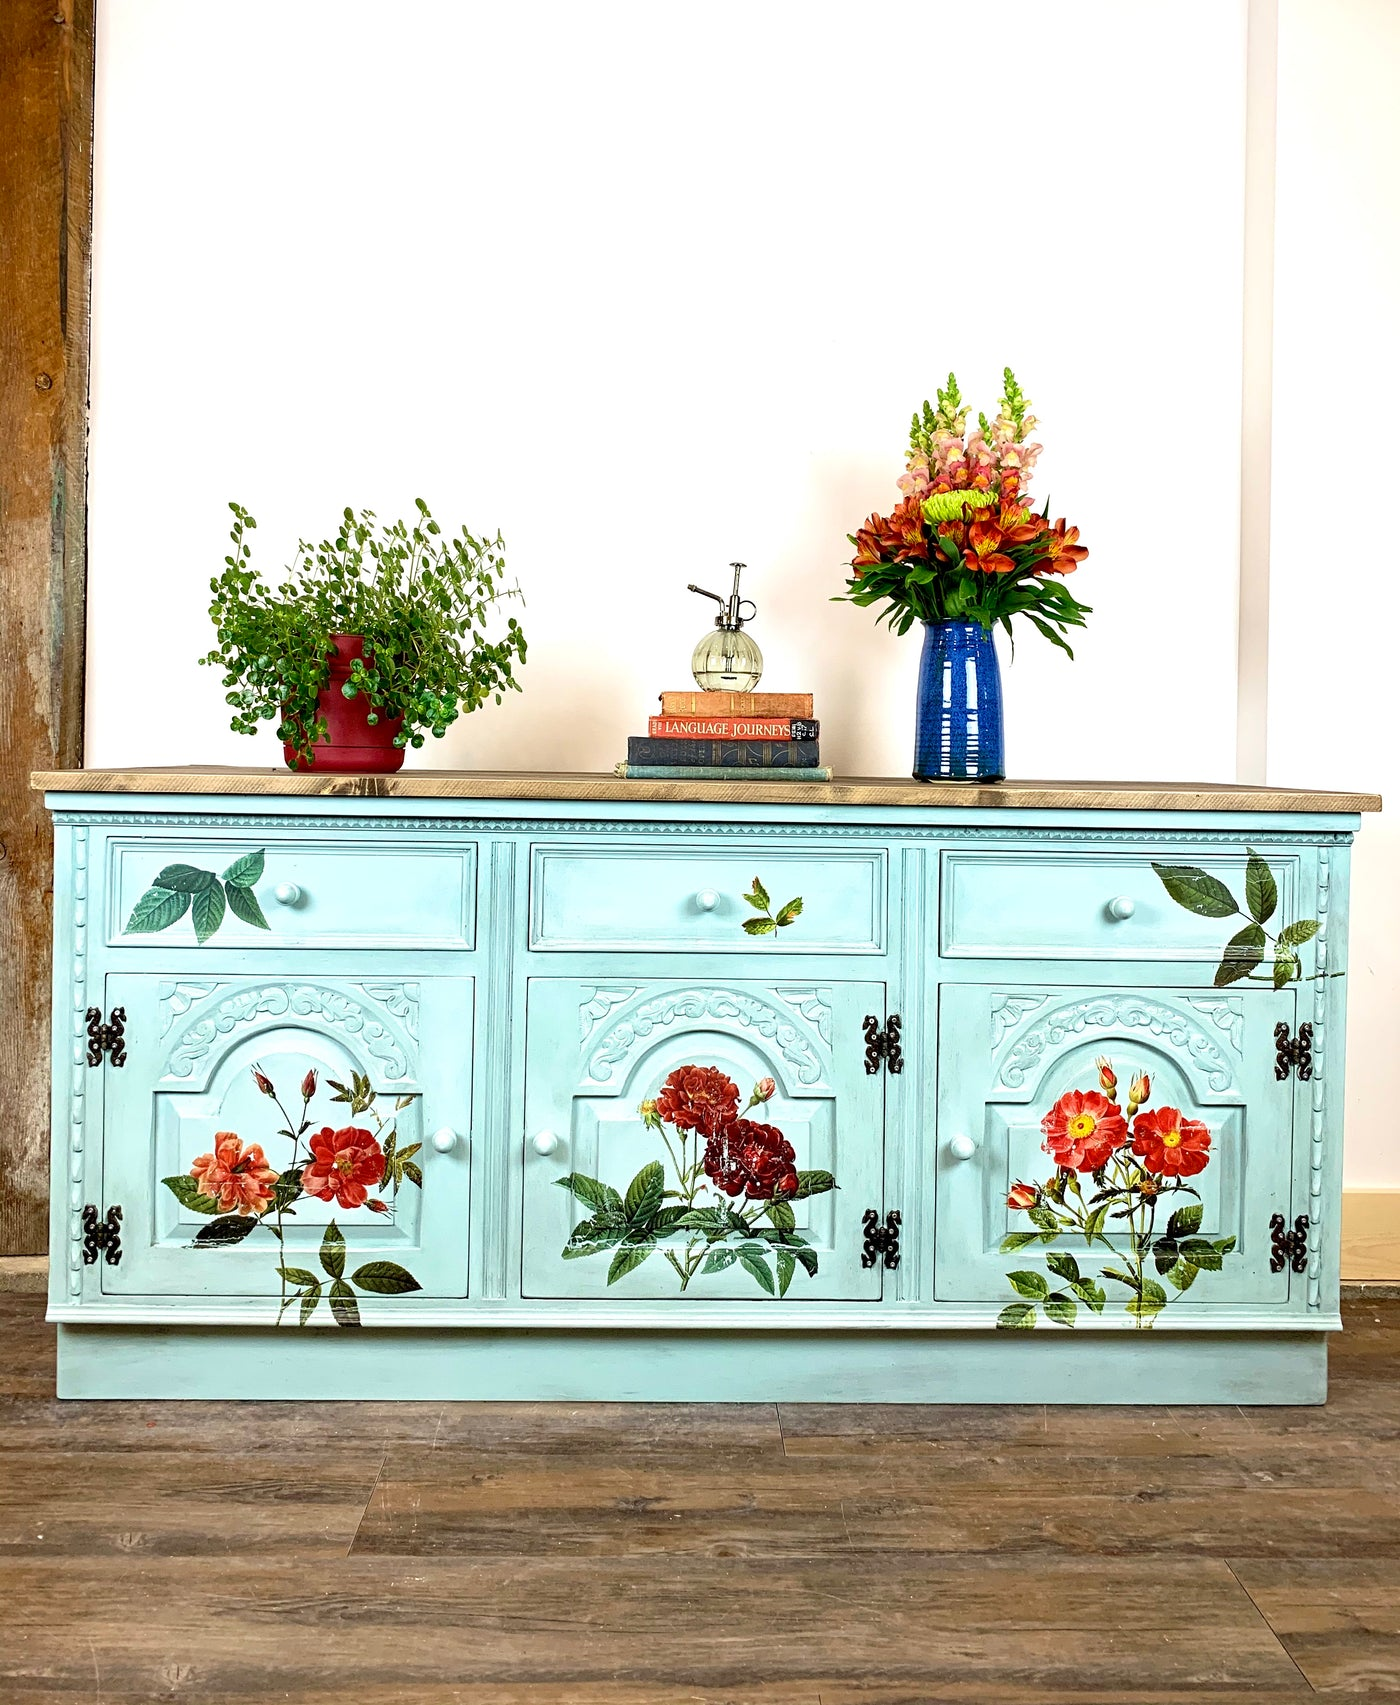 Annie Sloan chalk paint and Iron Orchis Designs Image Transfer complete a furniture makeover